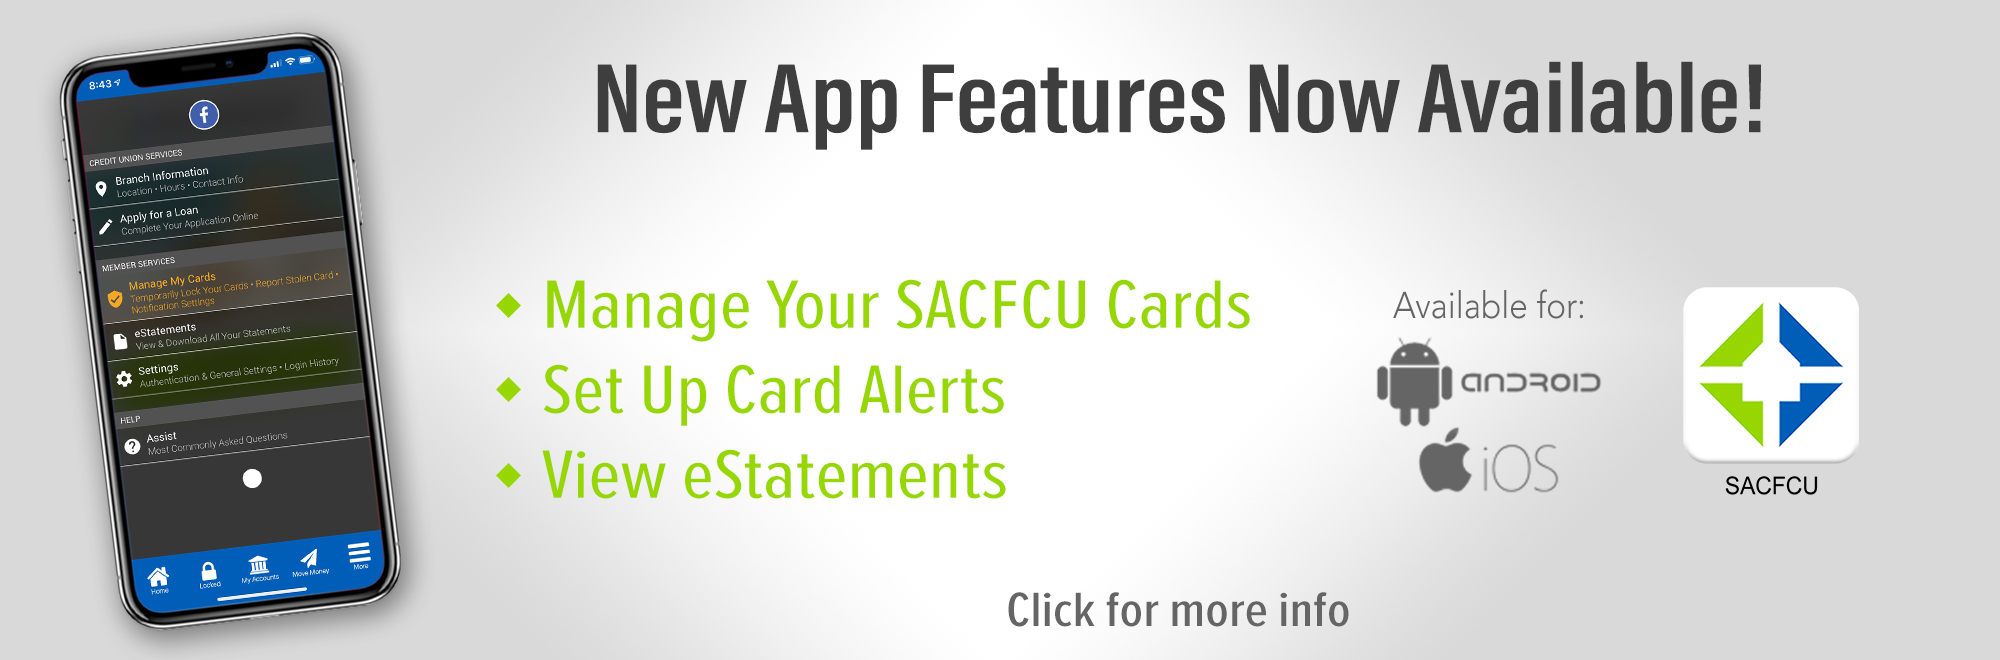 New App Features Coming This Month! You will now be able to Manage your SACFCU Cards, Set up card alerts, and view your eStatements.